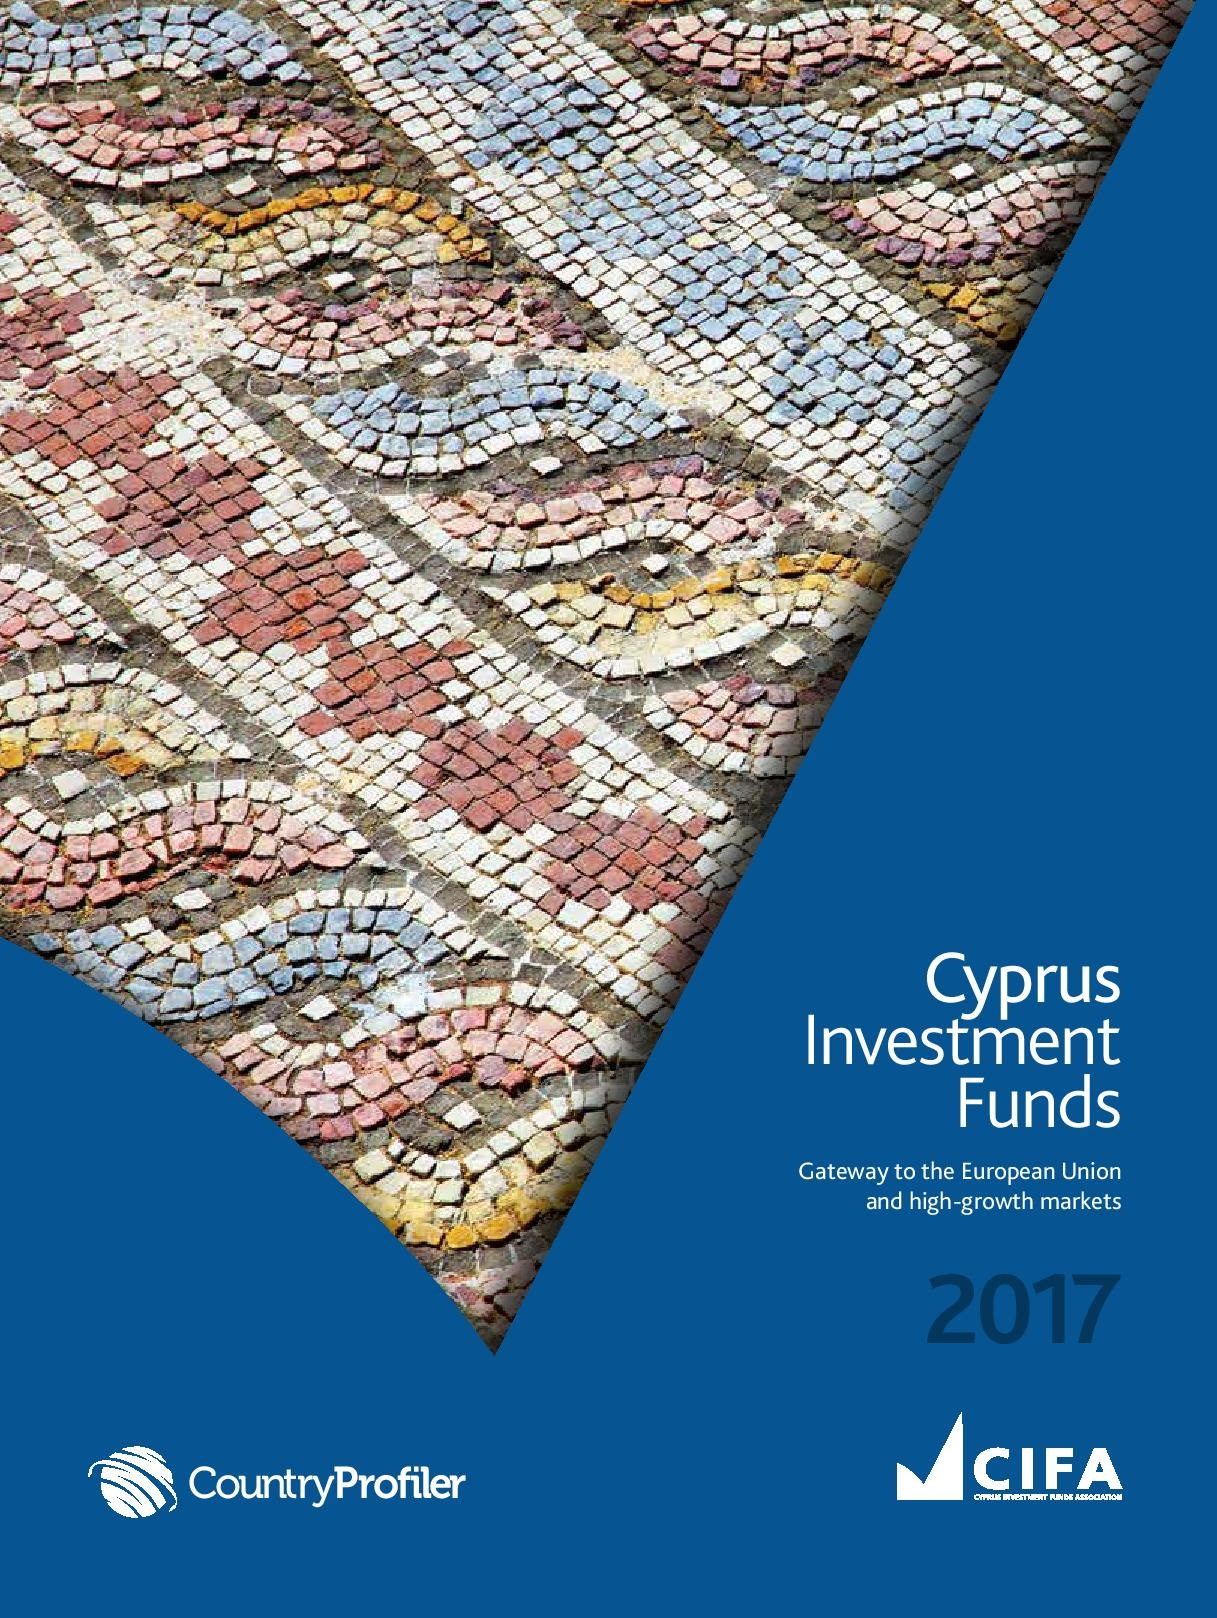 CIFA Investment Funds Guide 2017